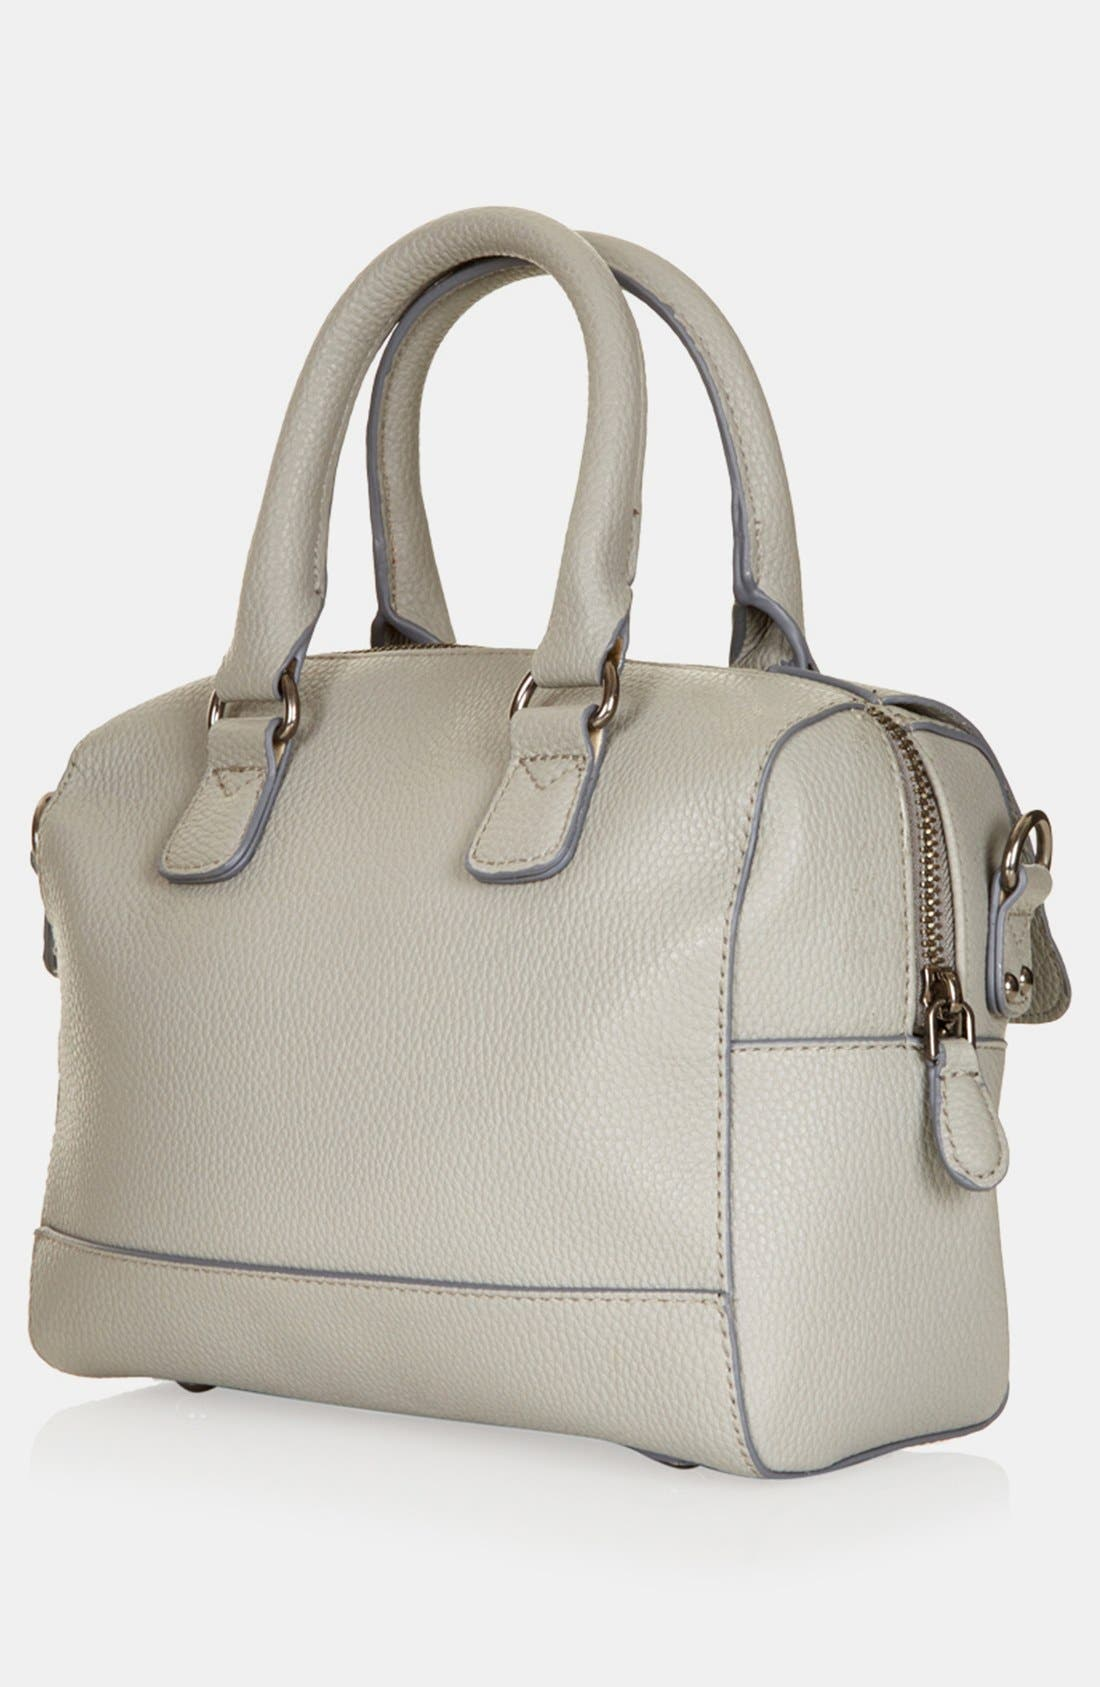 TOPSHOP, Faux Leather Mini Satchel, Alternate thumbnail 3, color, 020